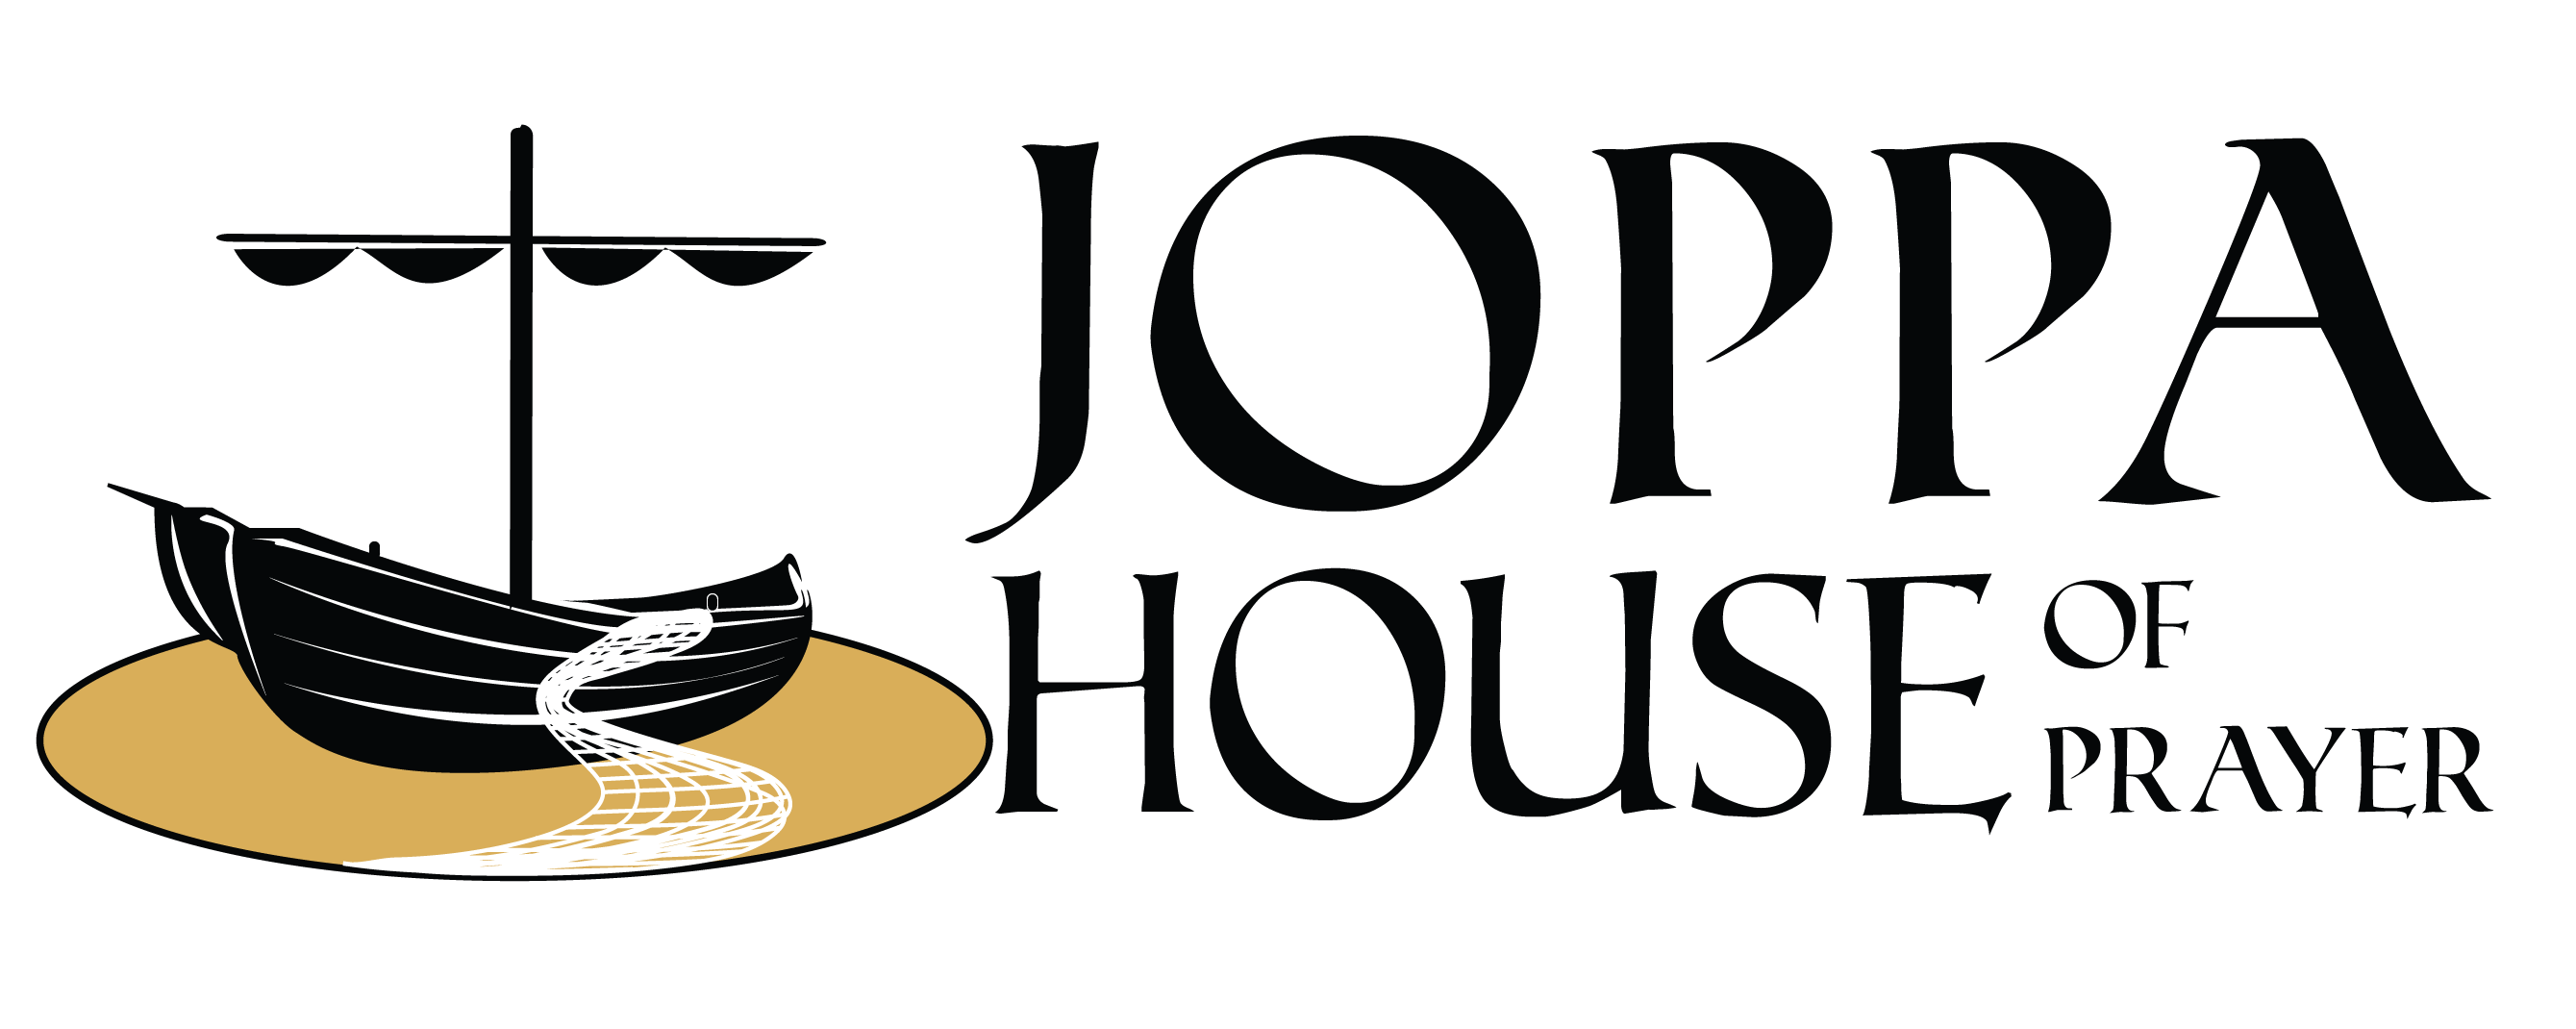 2679x1070 Welcome To Joppa House